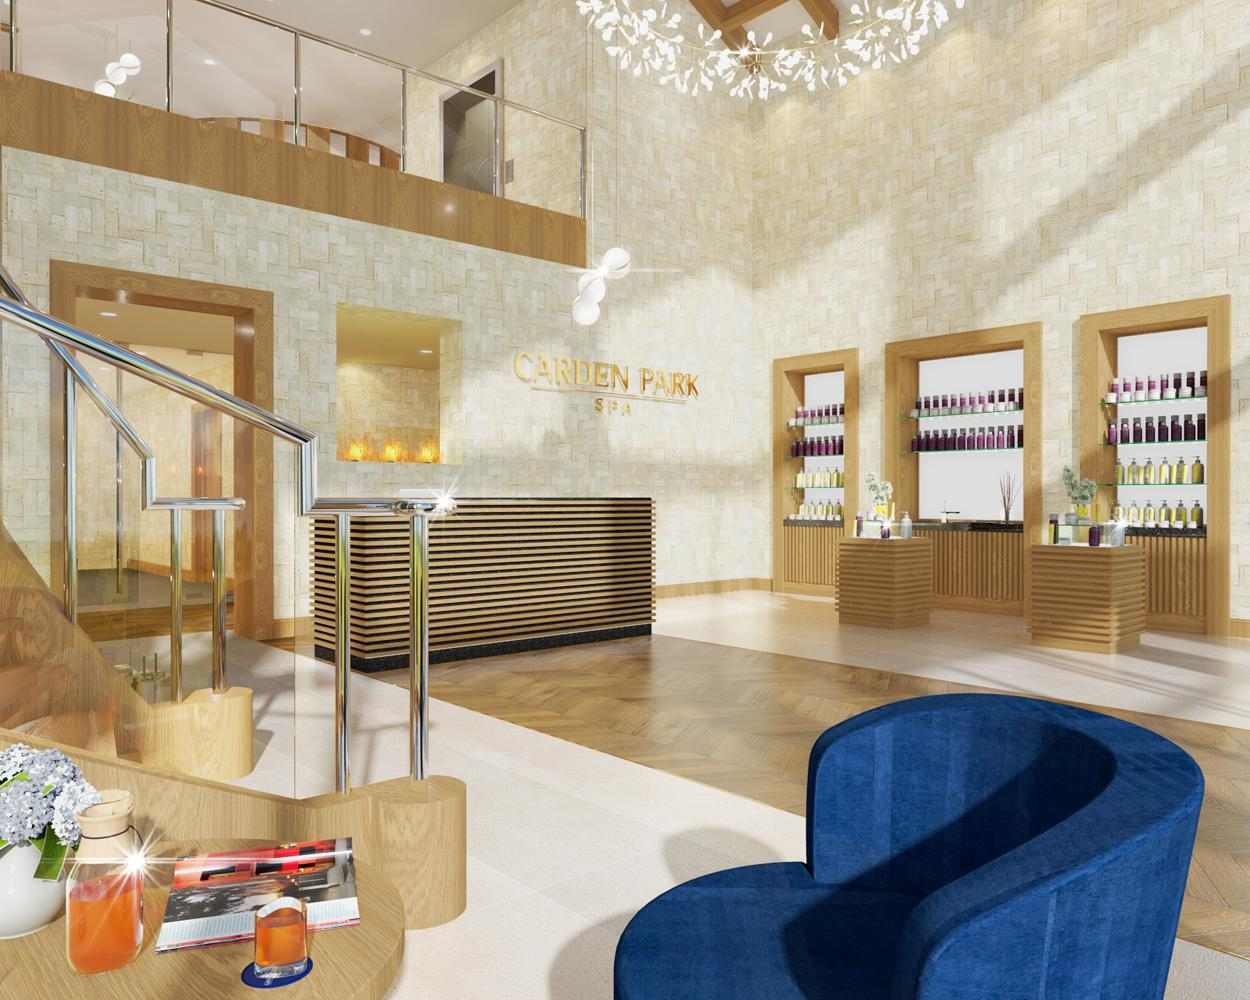 Carden Park Spa is expected to open next summer